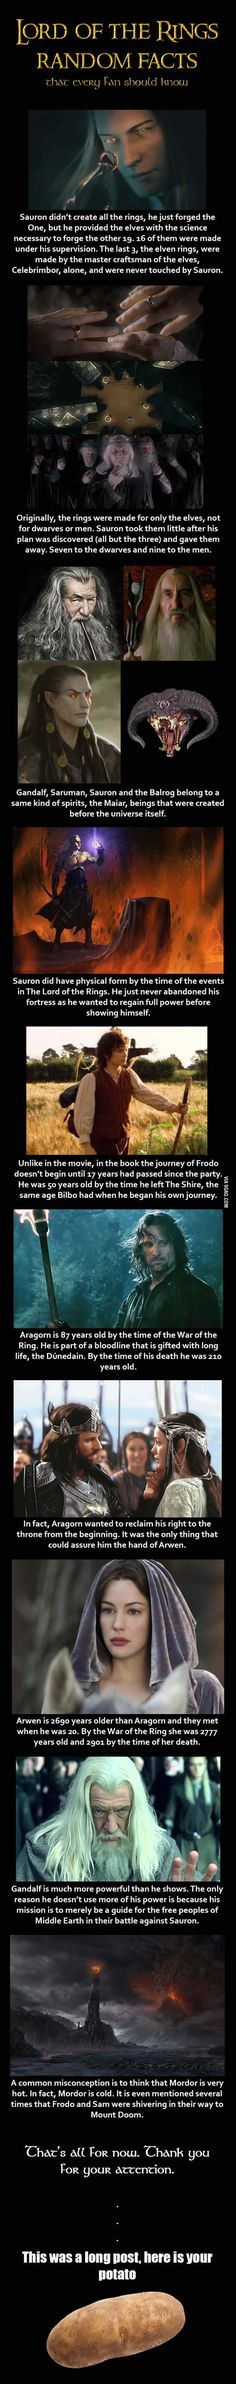 Lord of the Rings Random Facts Part 1